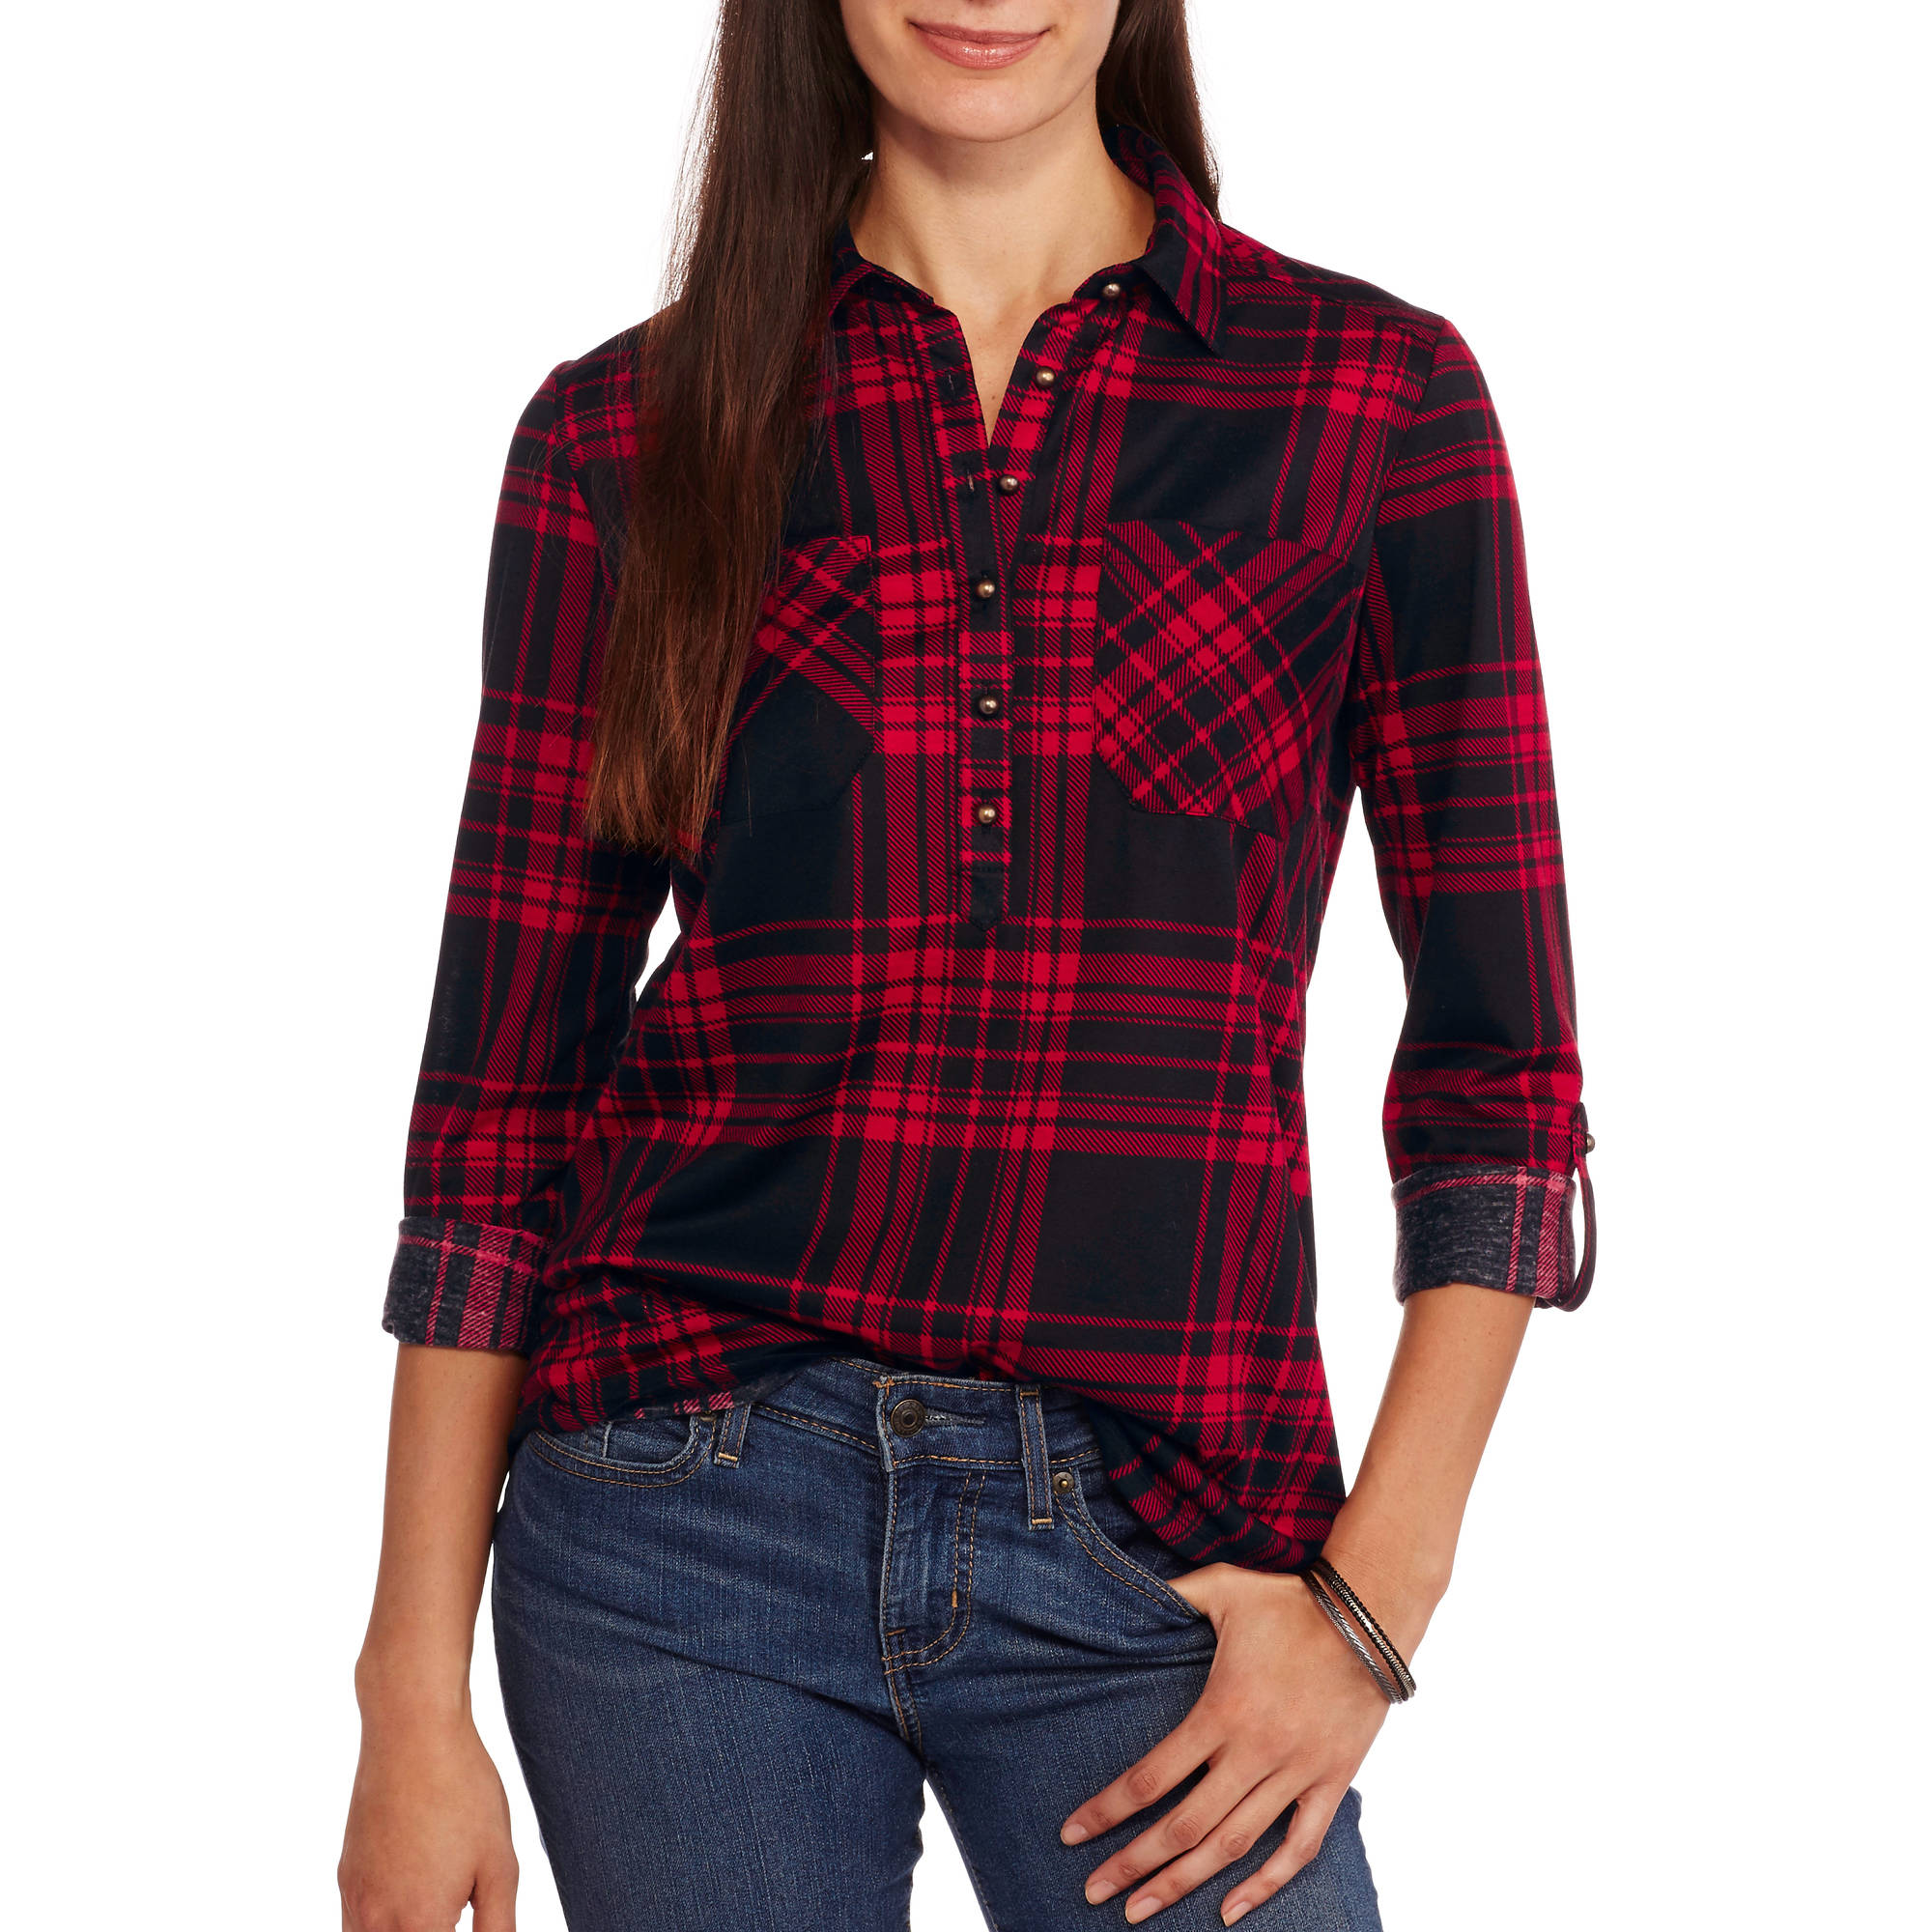 Women's Super Soft Knit Popover Plaid Tunic